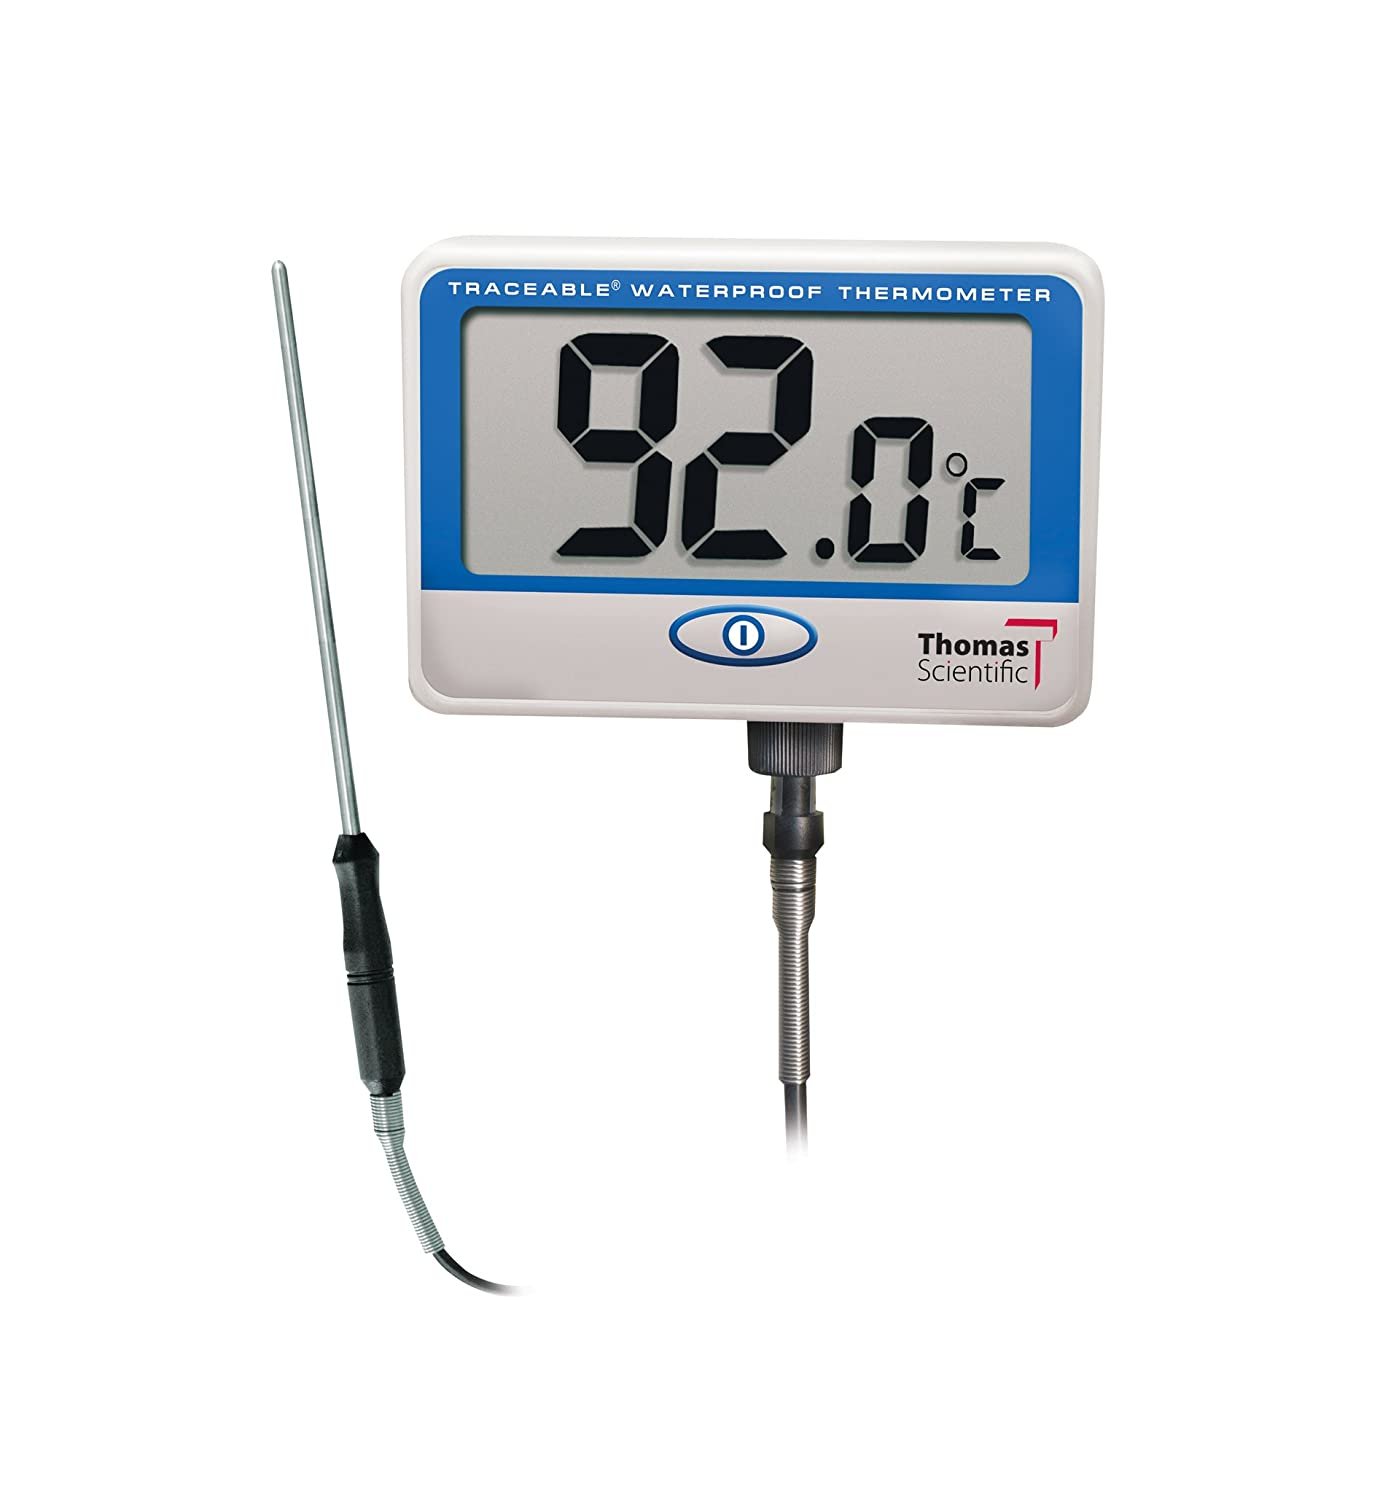 Image of Control Traceable 6406 Extra-Extra Long-Probe Waterproof Thermometer, -10°C to 110°C (14°F to 230°F) Range Digital Thermometers